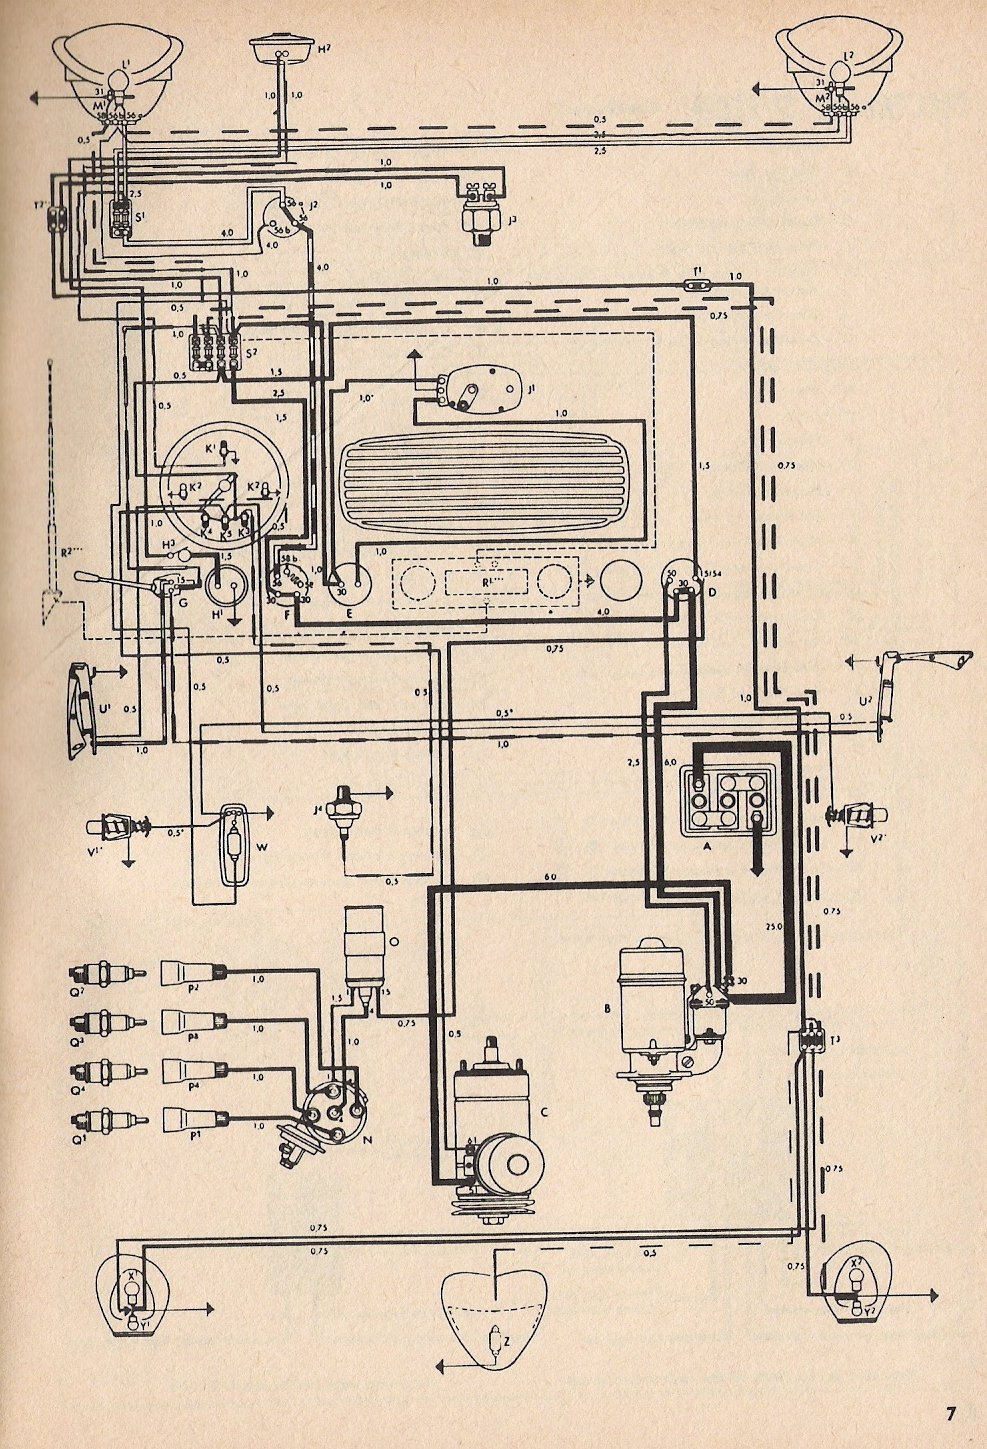 1972 Vw Beetle Turn Signal Wiring Diagram Just Another 1973 Van 72 Bus Relay Home Rh 3 10 1 Medi Med Ruhr De Volkswagen 1970